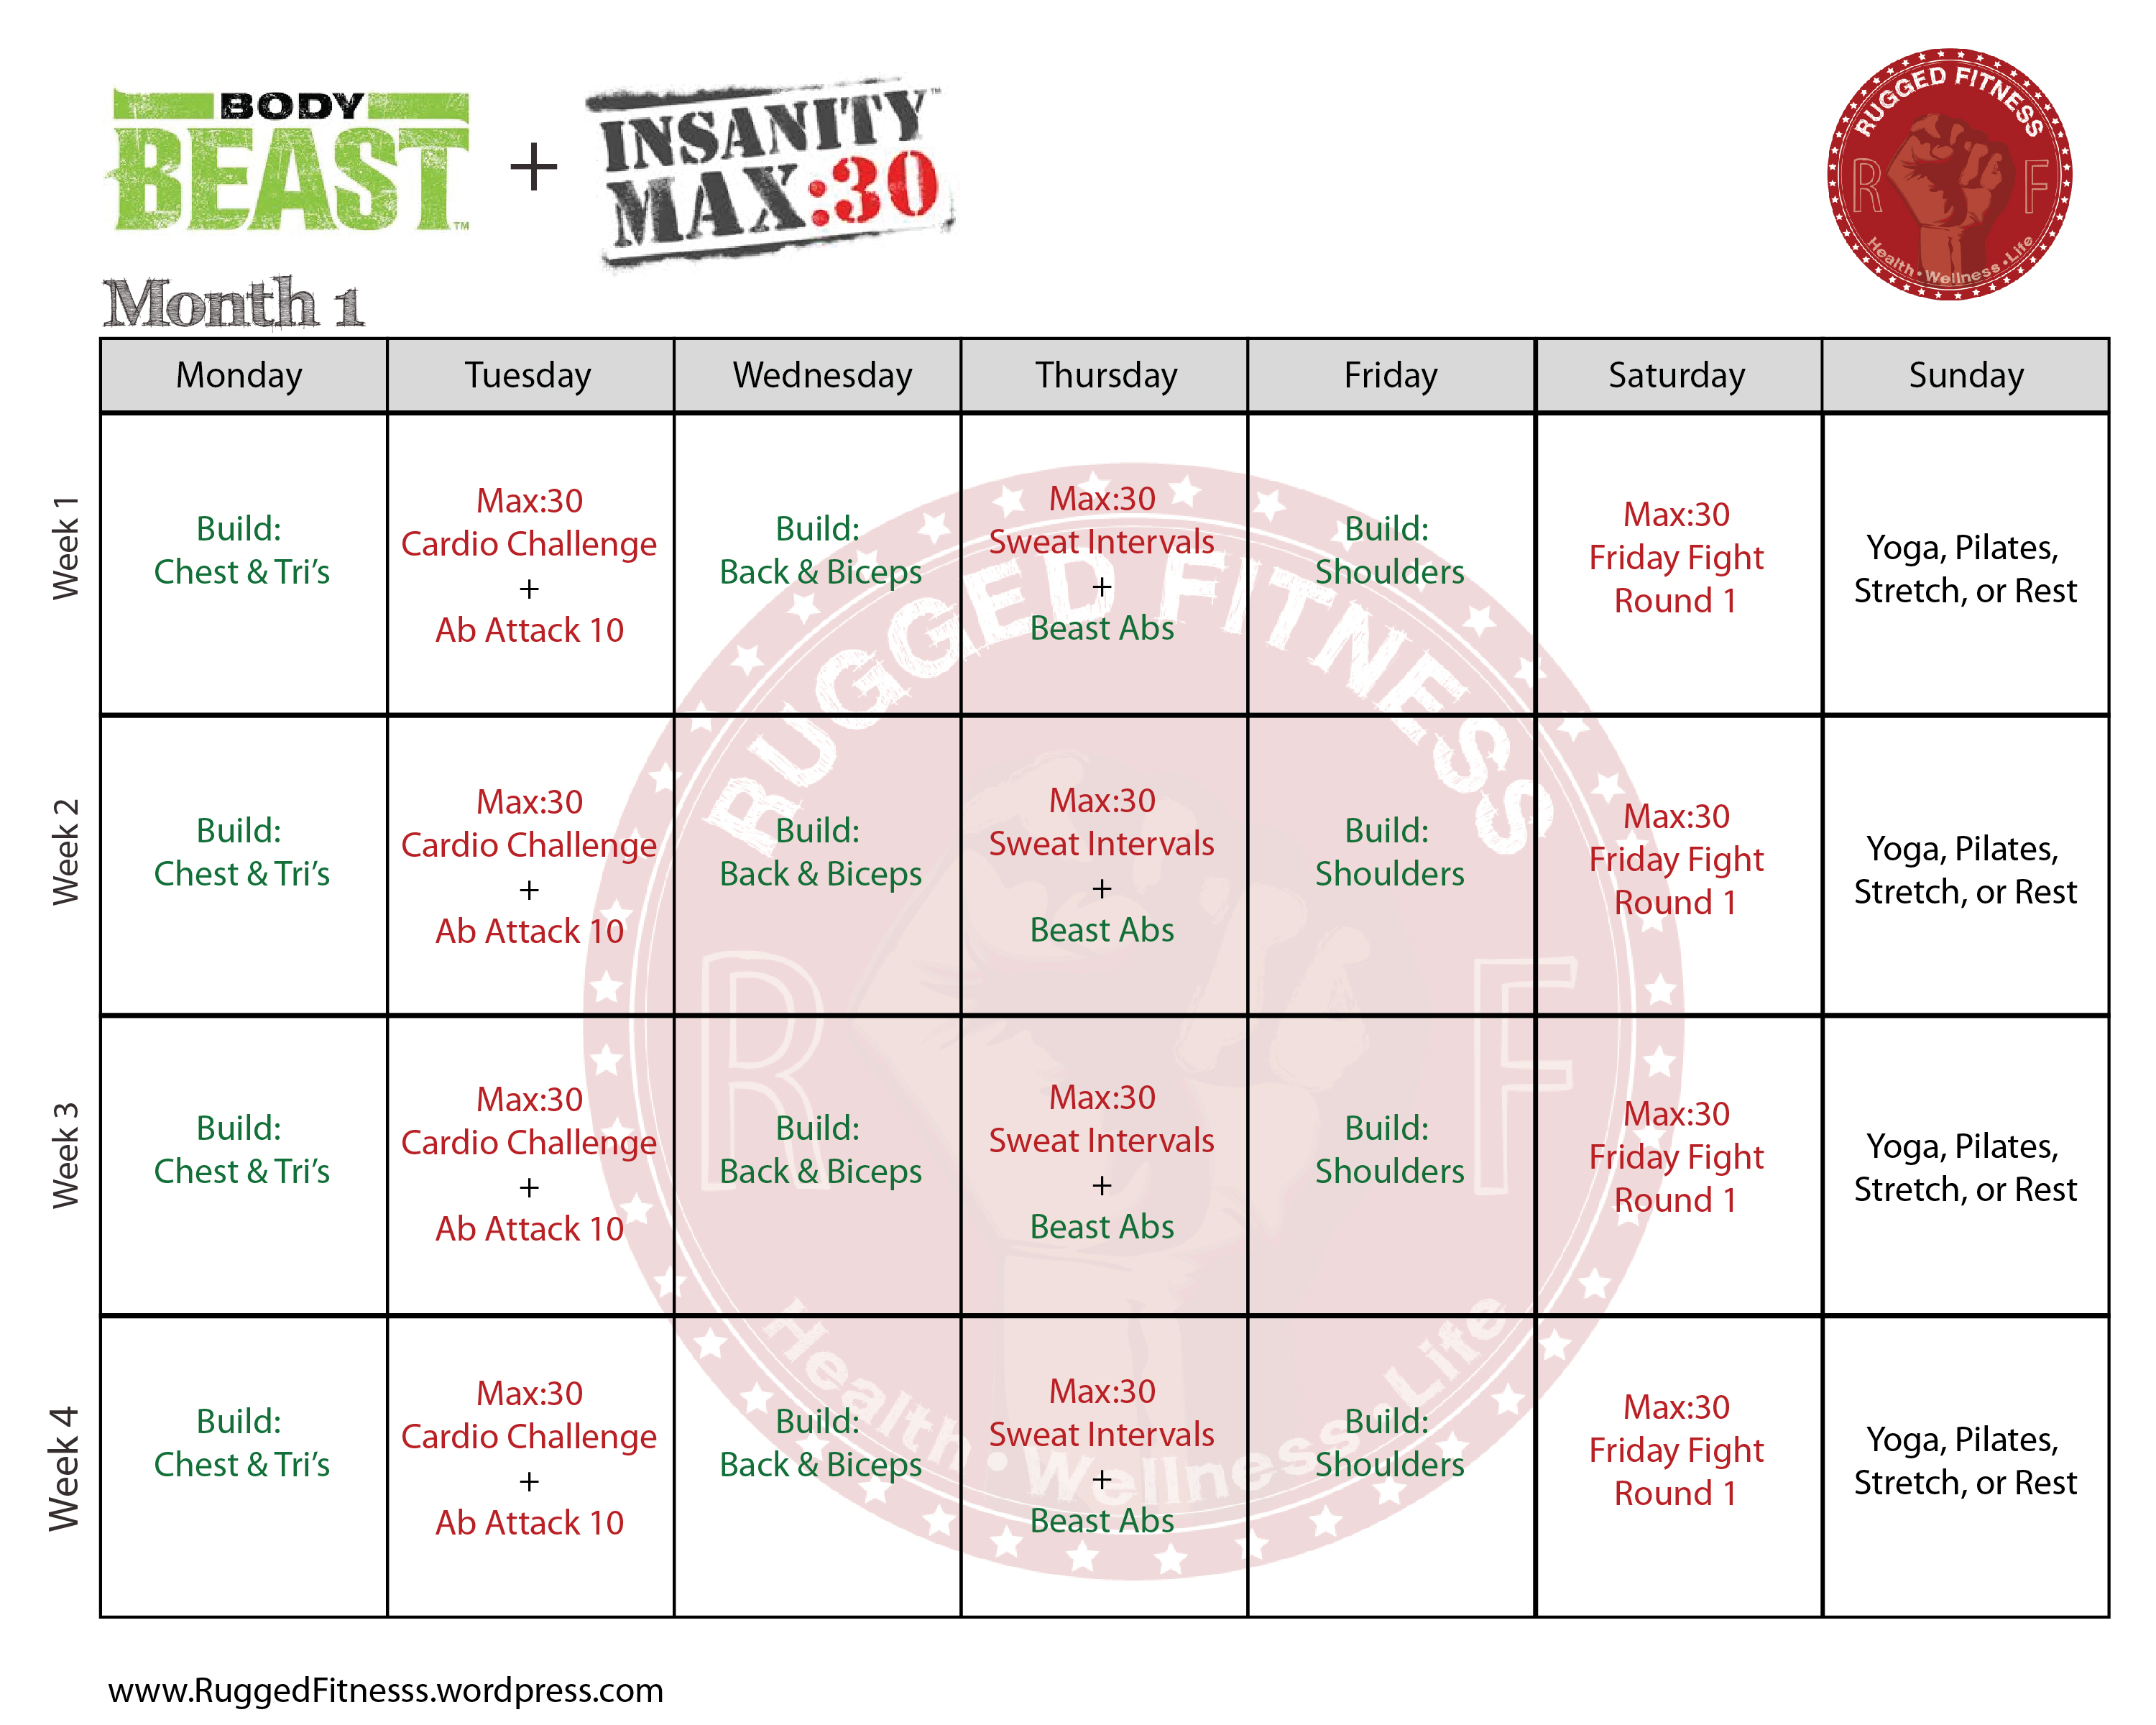 Body Beast + Insanity: Max 30 Hybrid Schedule | Rugged Fitnesss for Insanity Max 30 Calendar Month 2